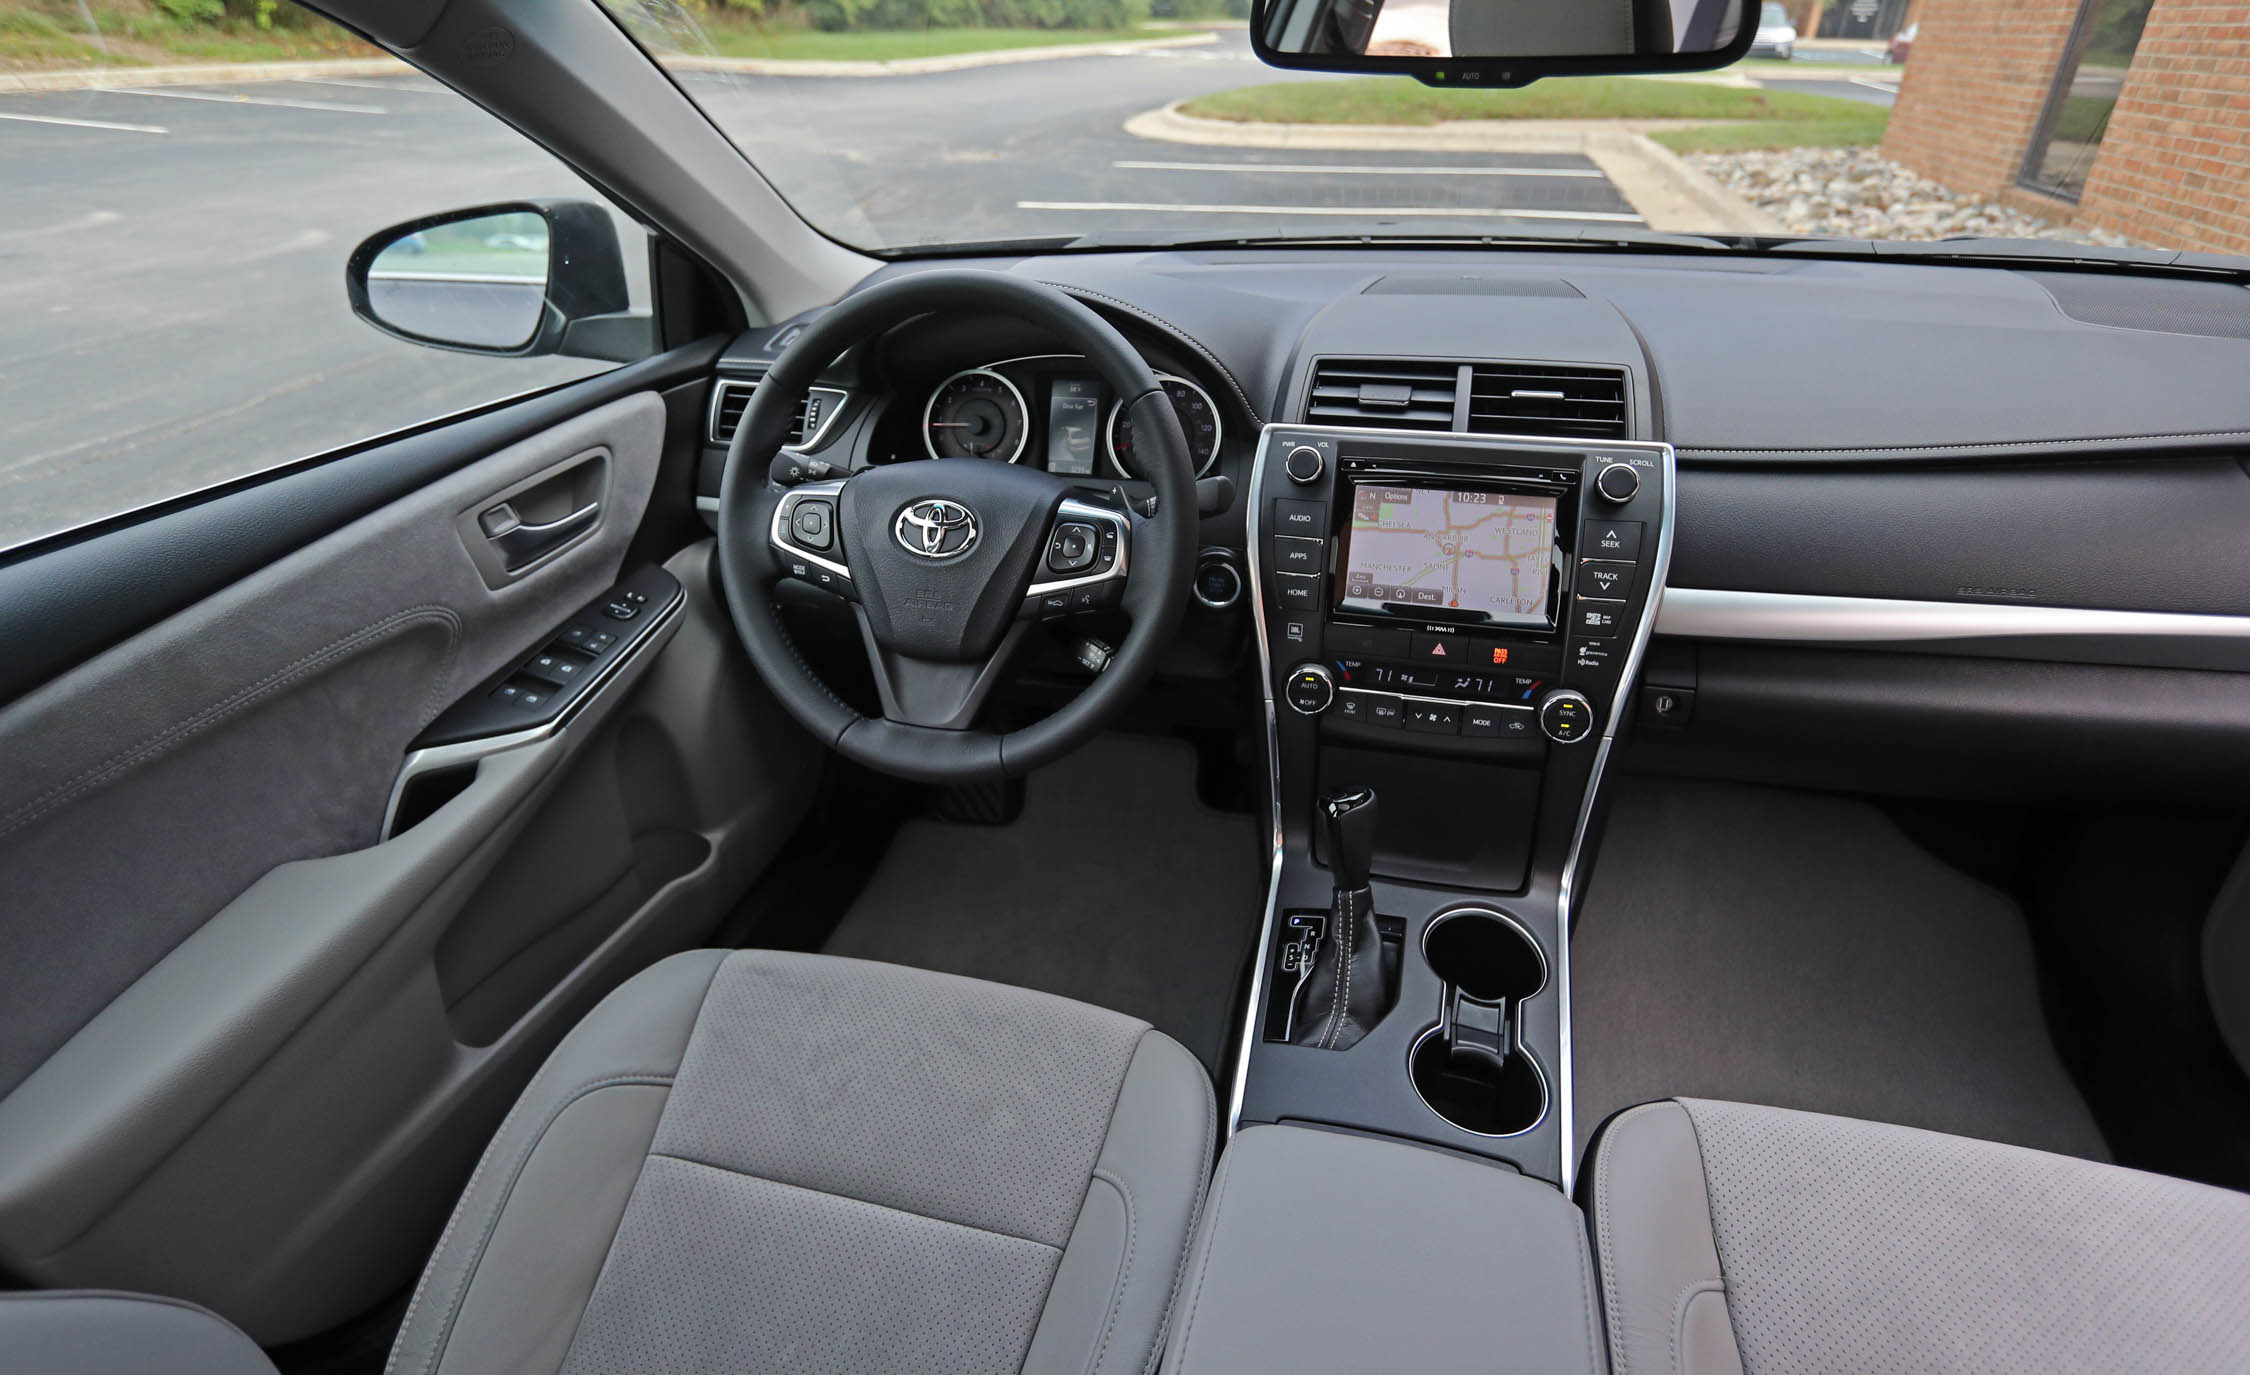 2017 Toyota Camry Interior Dashboard (View 25 of 37)